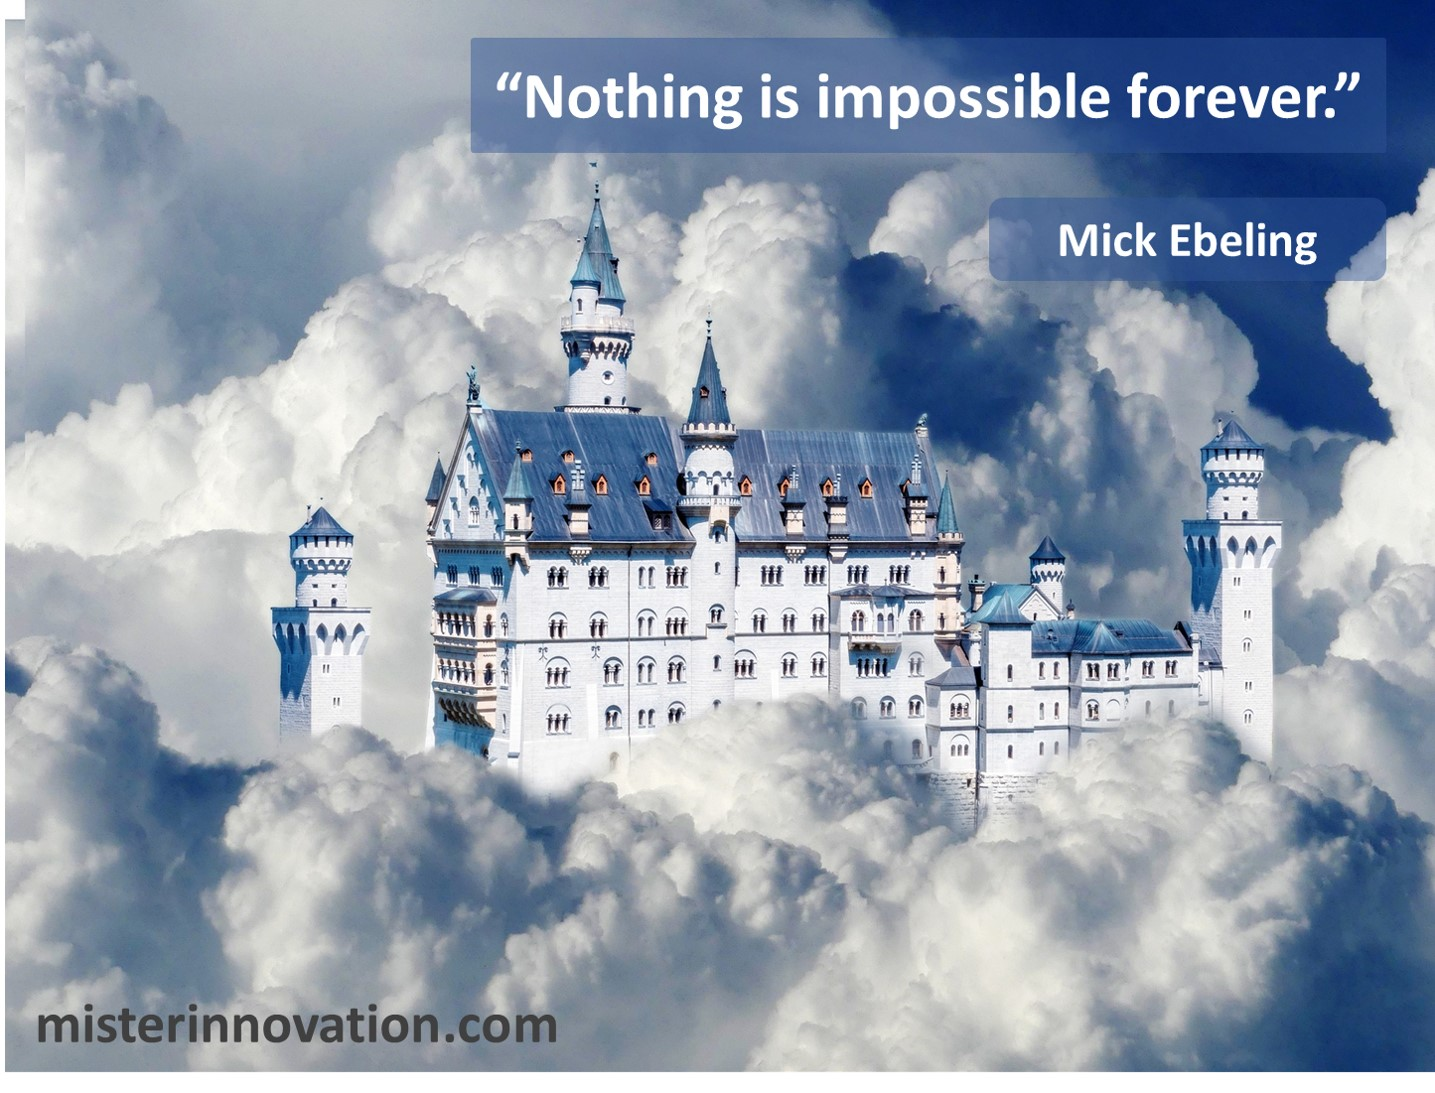 Mick Ebeling Quote on Nothing is Impossible Forever